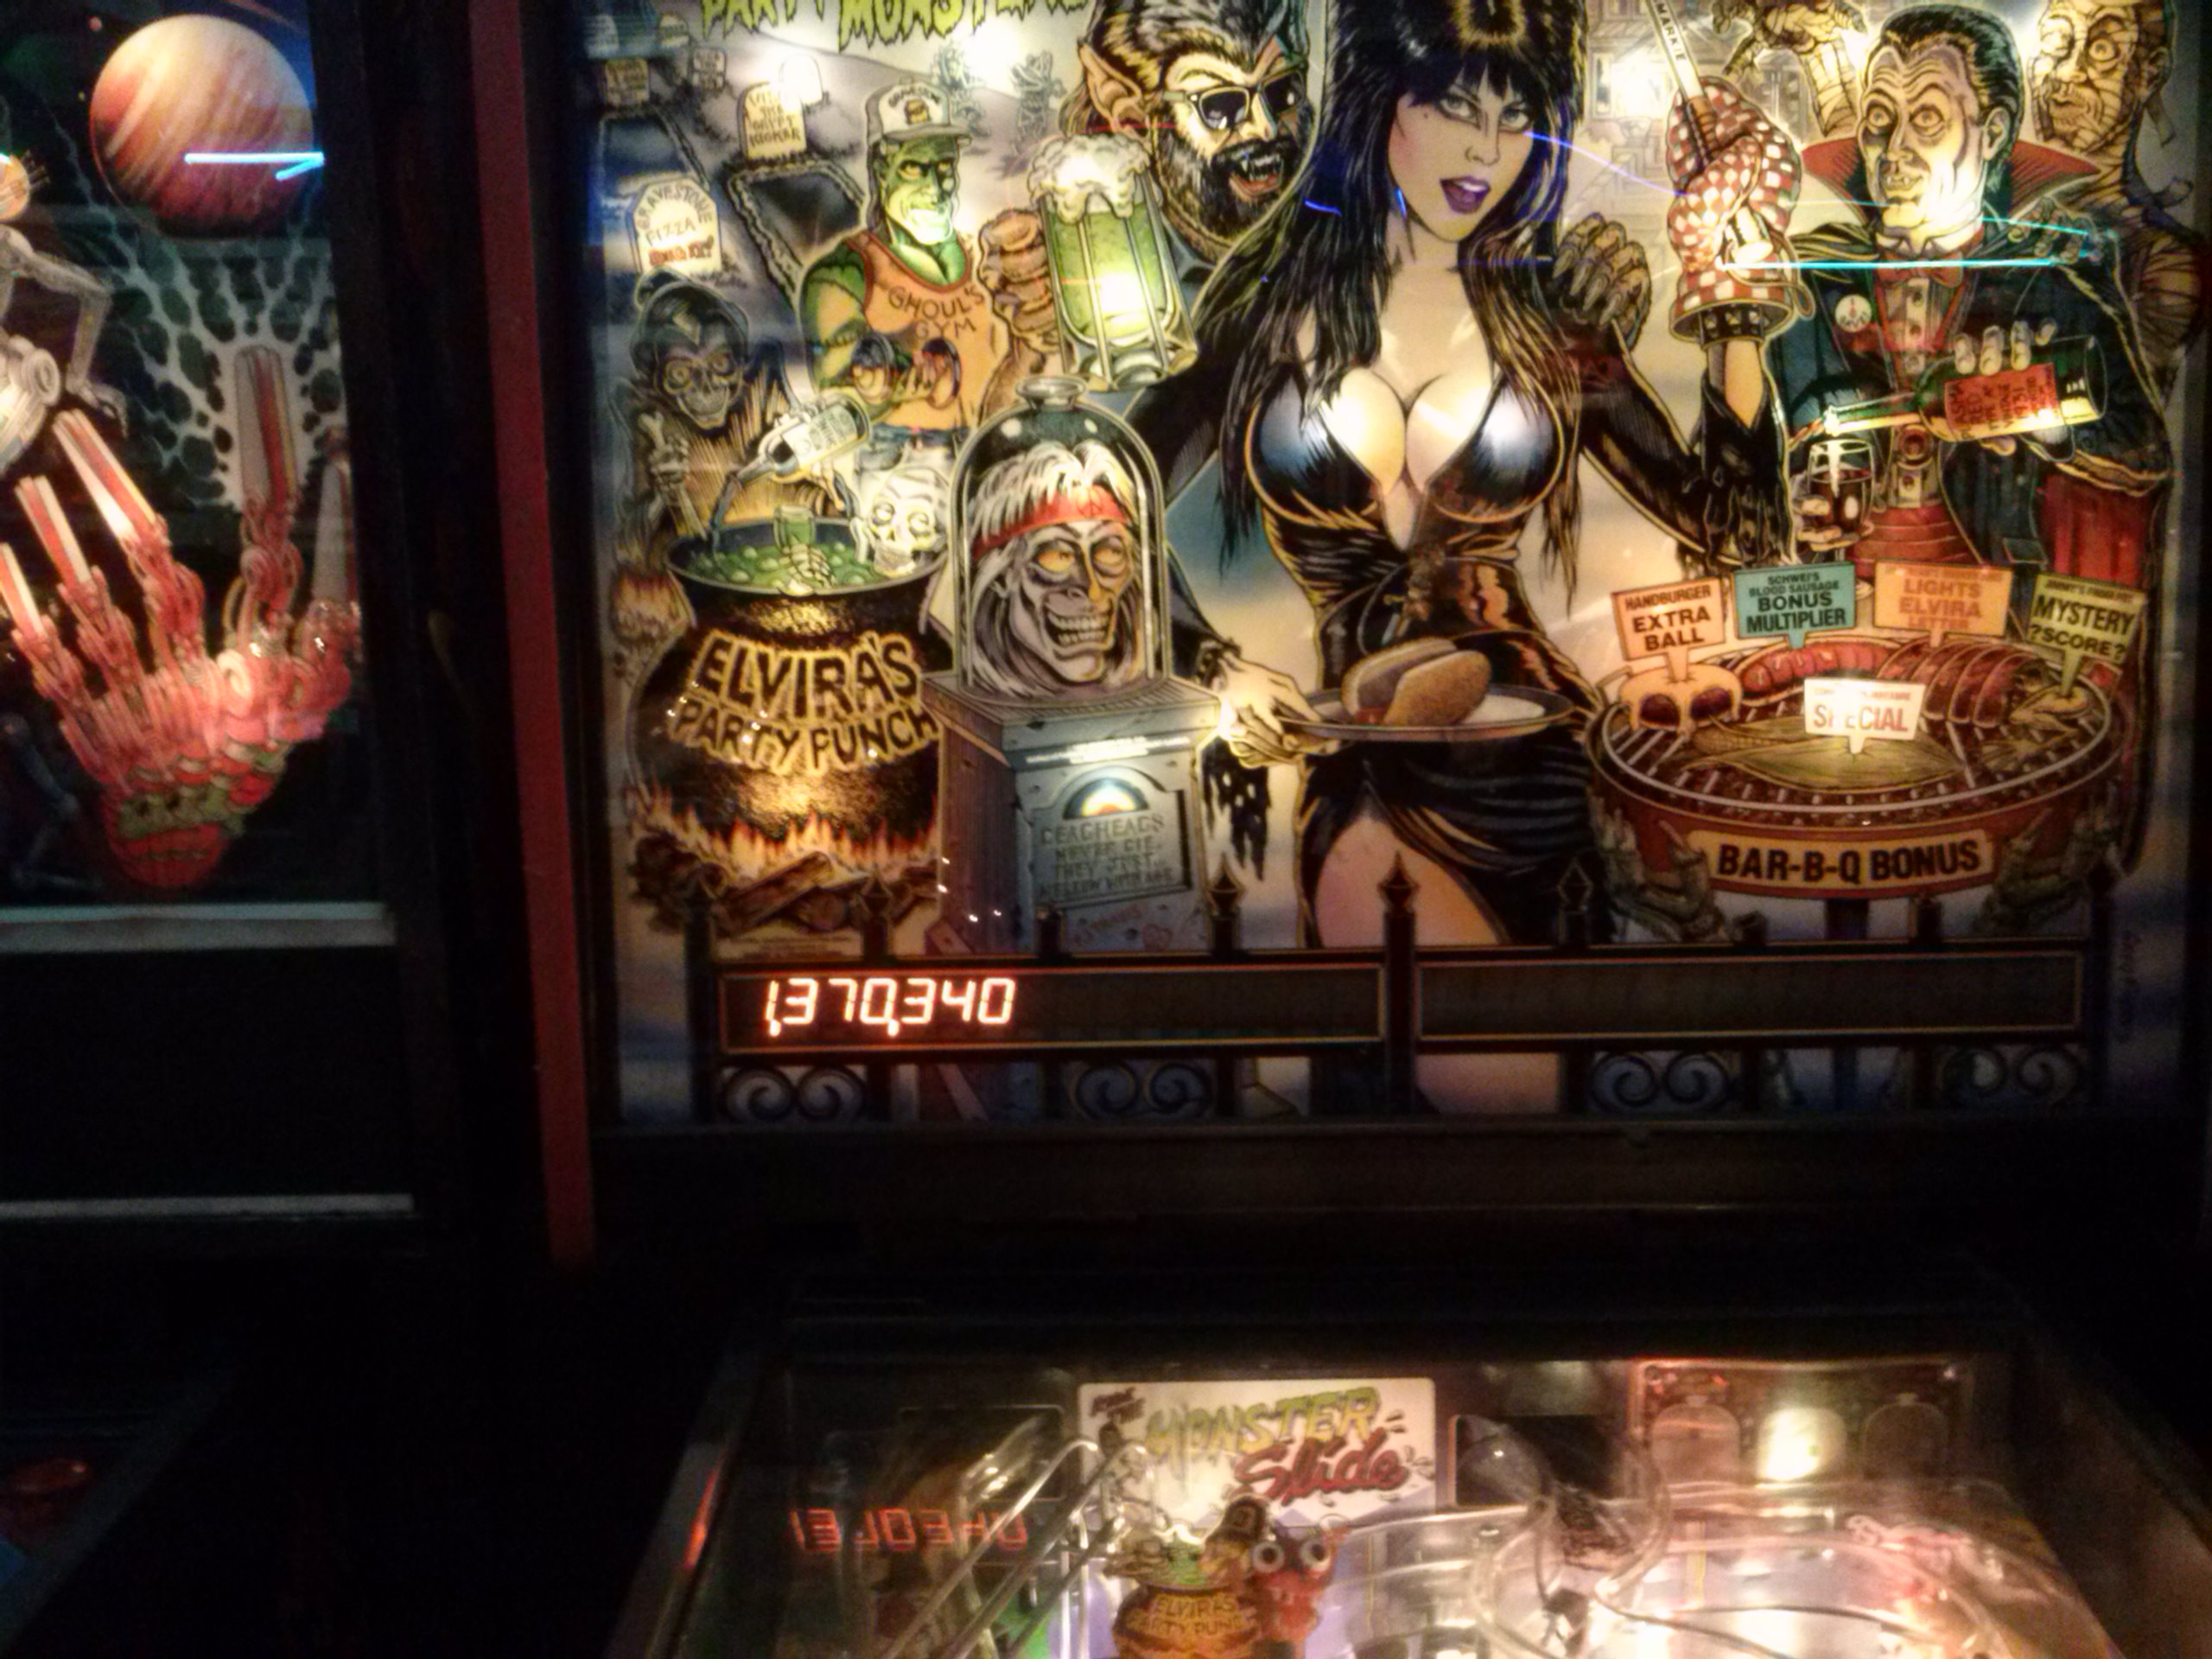 nester: Elvira and the Party Monsters (Pinball: 3 Balls) 1,370,340 points on 2014-05-21 18:21:40